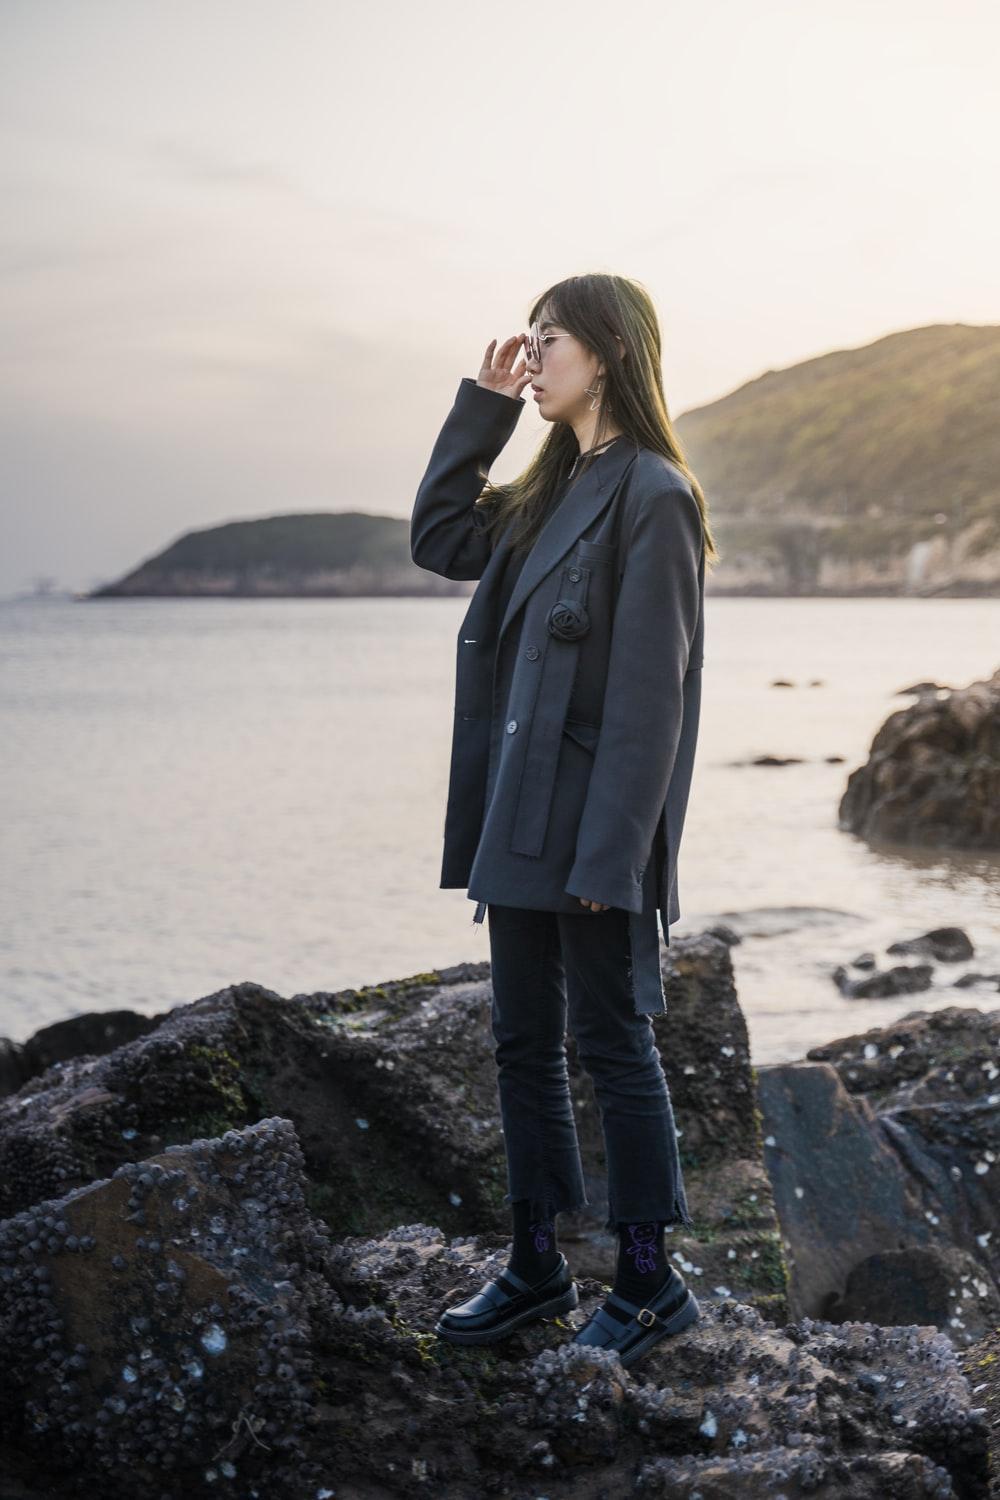 woman in black coat standing on rock formation near body of water during daytime